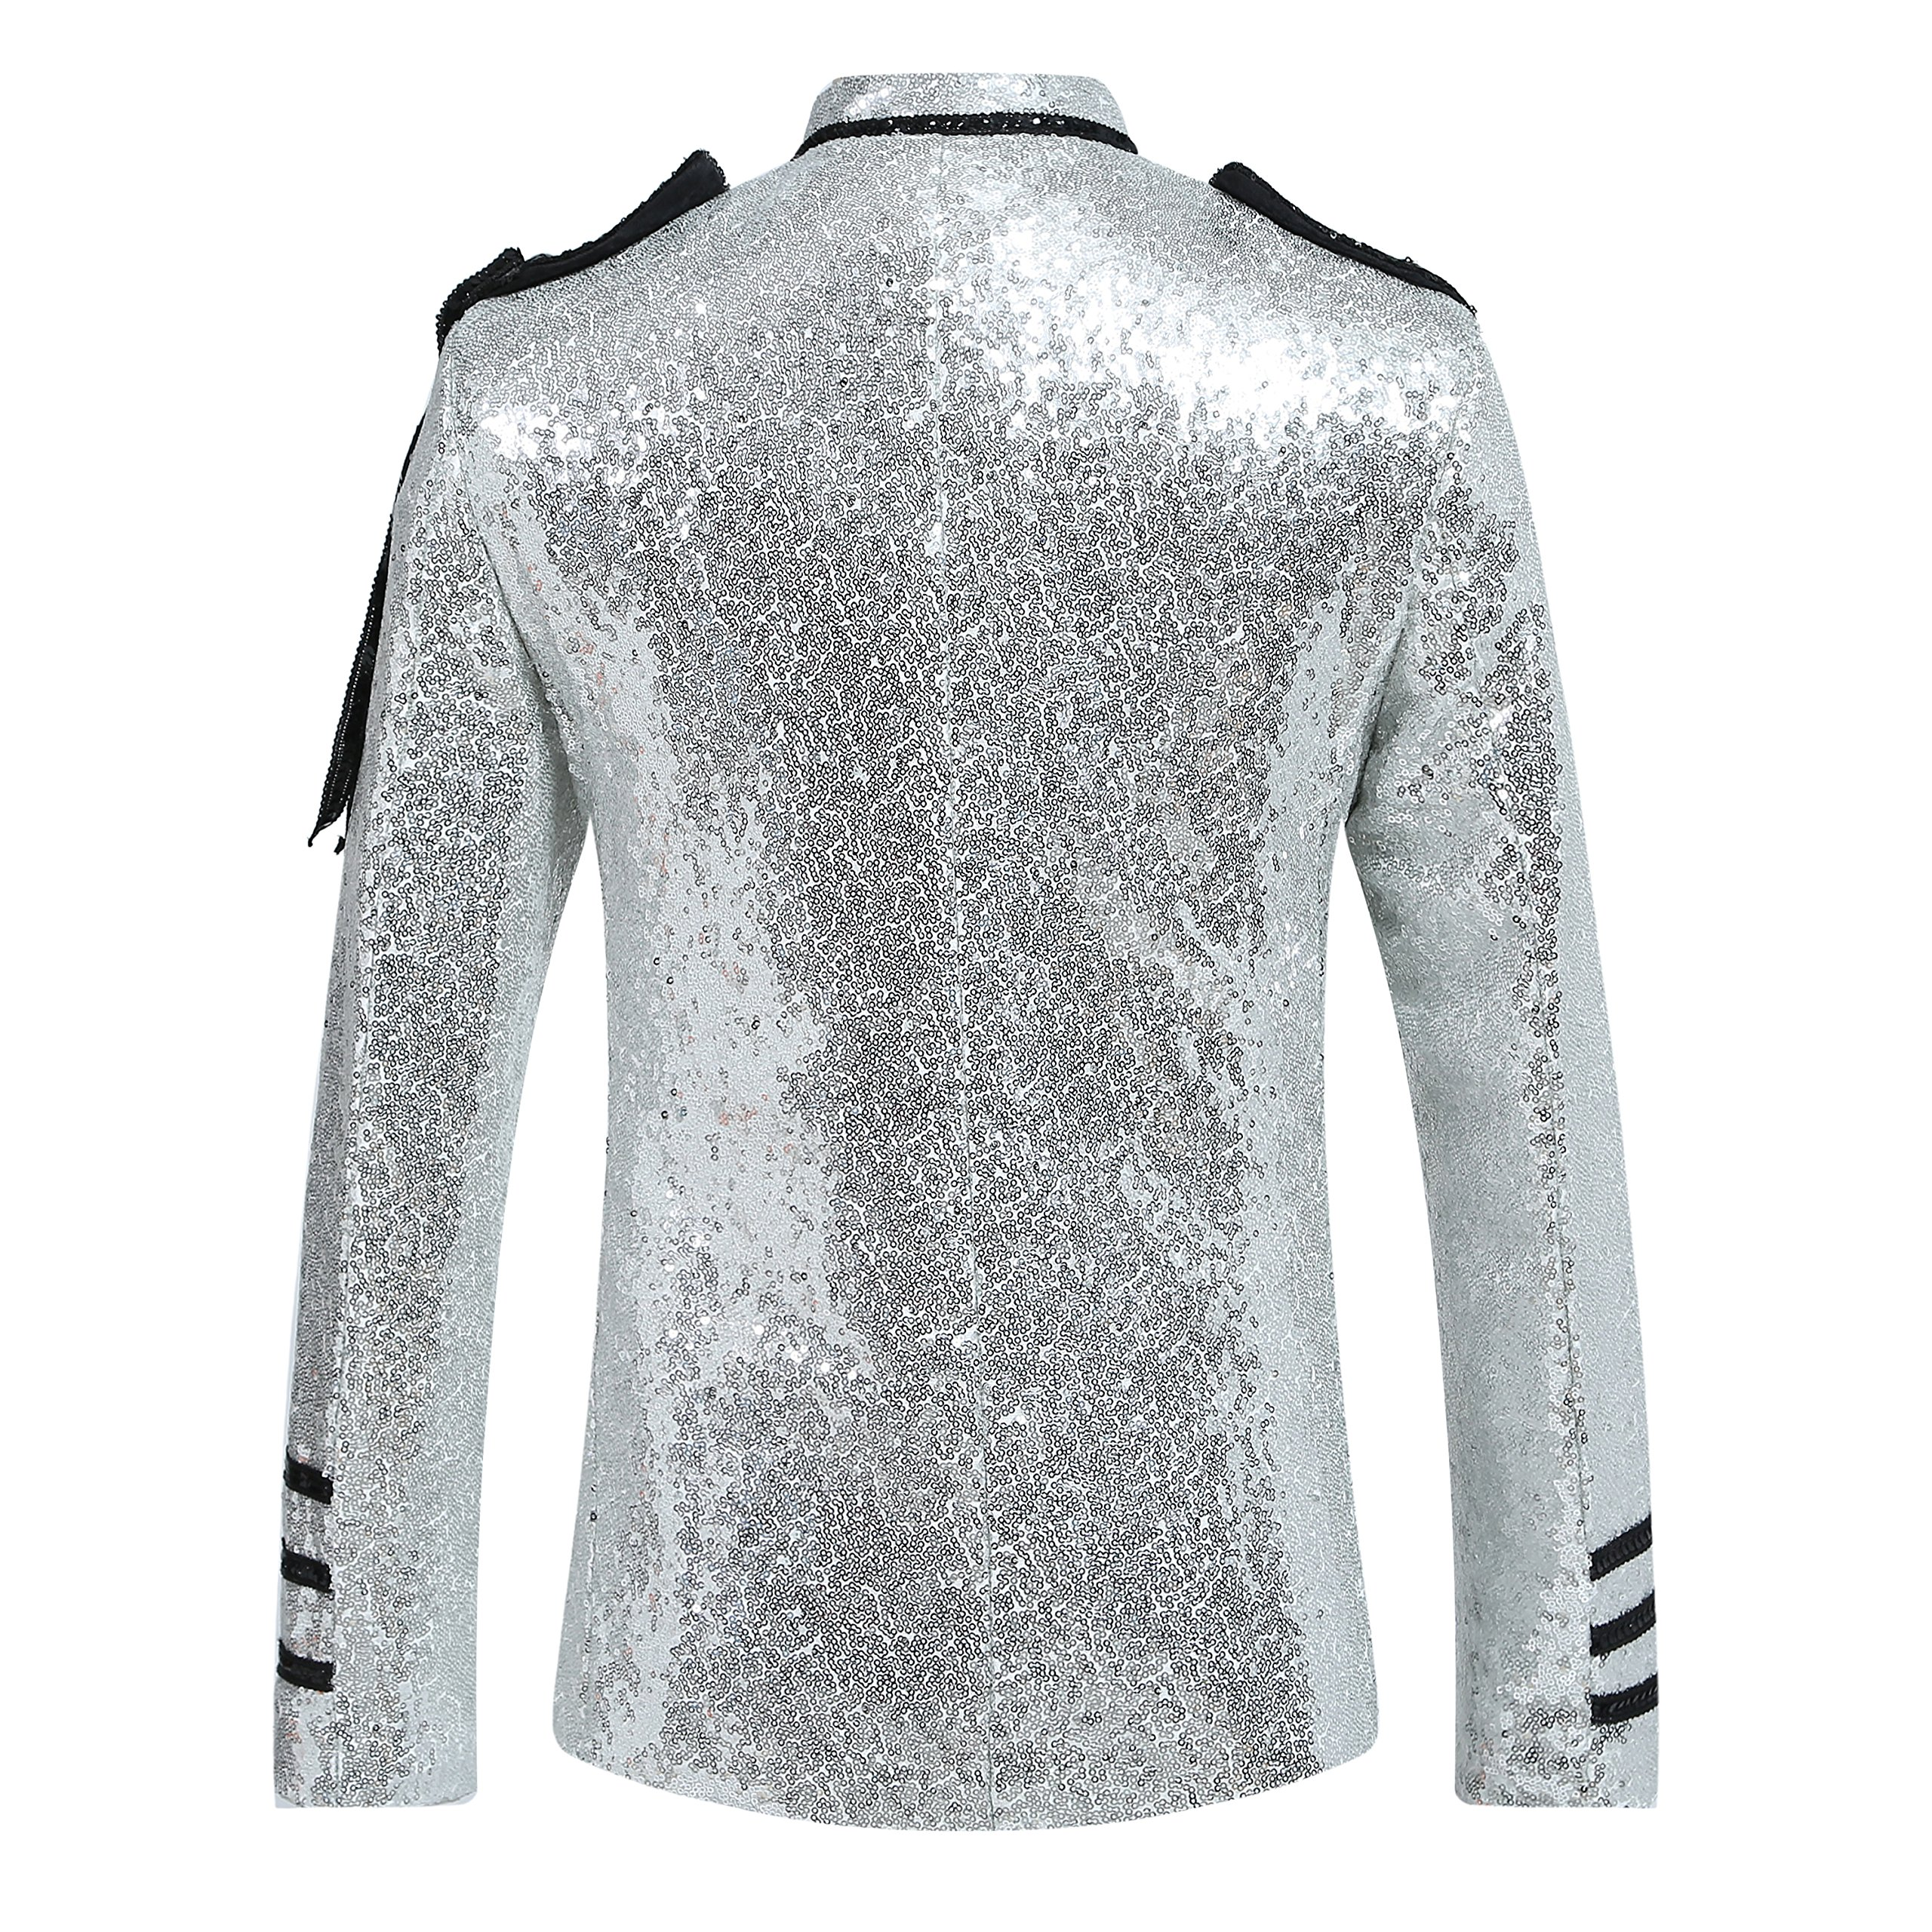 Mens 2-Piece Suit Fashion Sequin Party Prom Dinner Blazer Tuxedo Jacket Trousers,White,Large by Cloudstyle (Image #3)